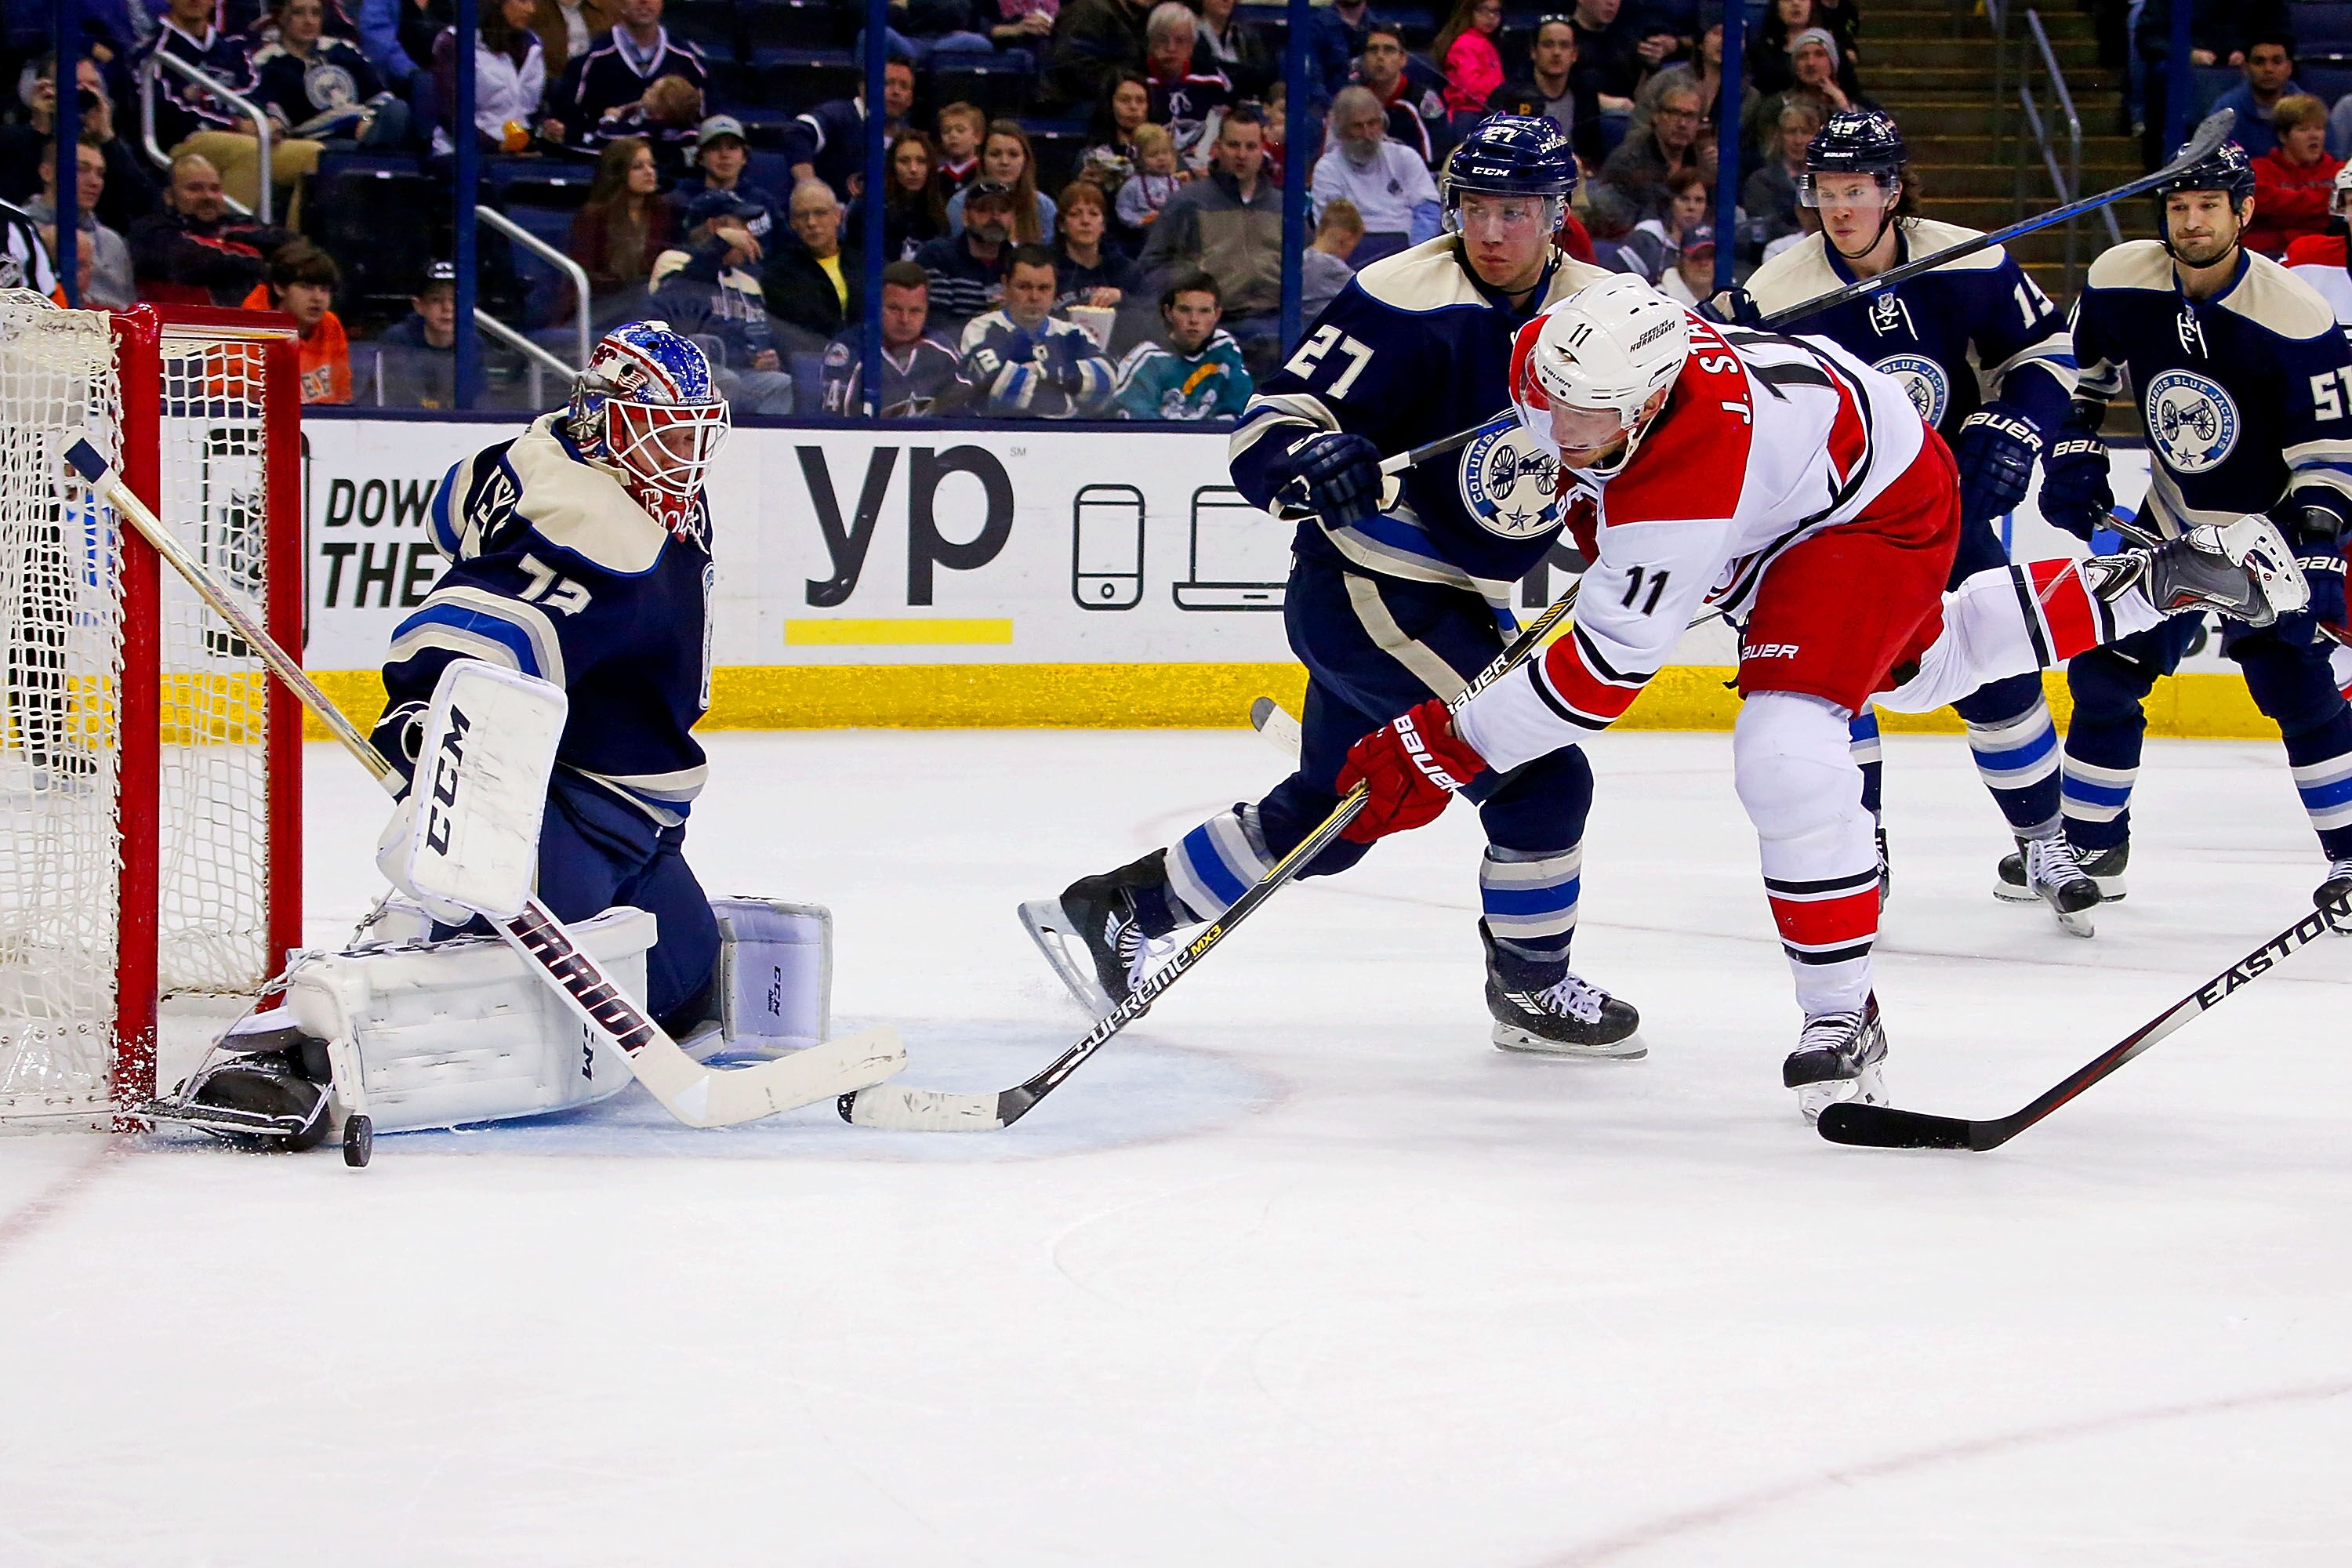 Carolina Hurricanes vs. Columbus Blue Jackets preview, live stream ...